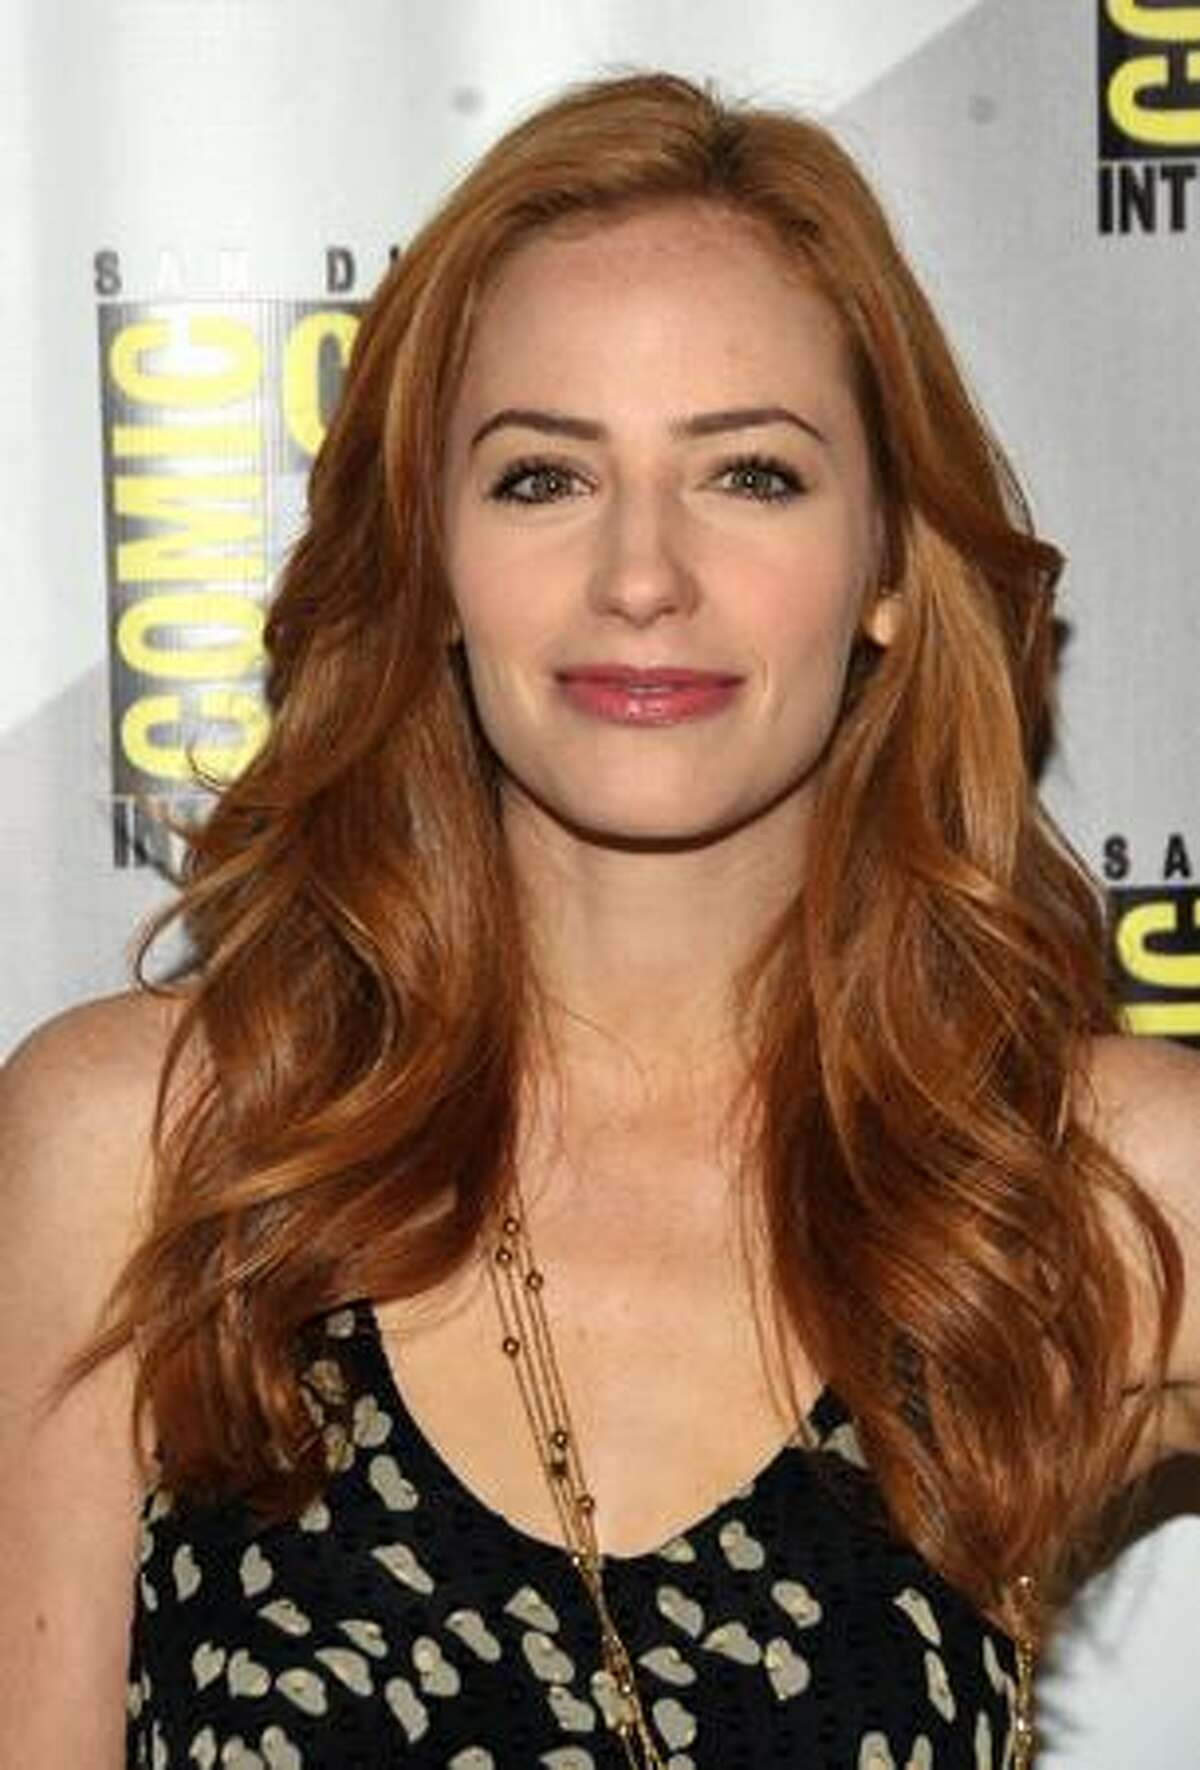 SAN DIEGO - JULY 25: Actress Jaime Ray Newman attends the